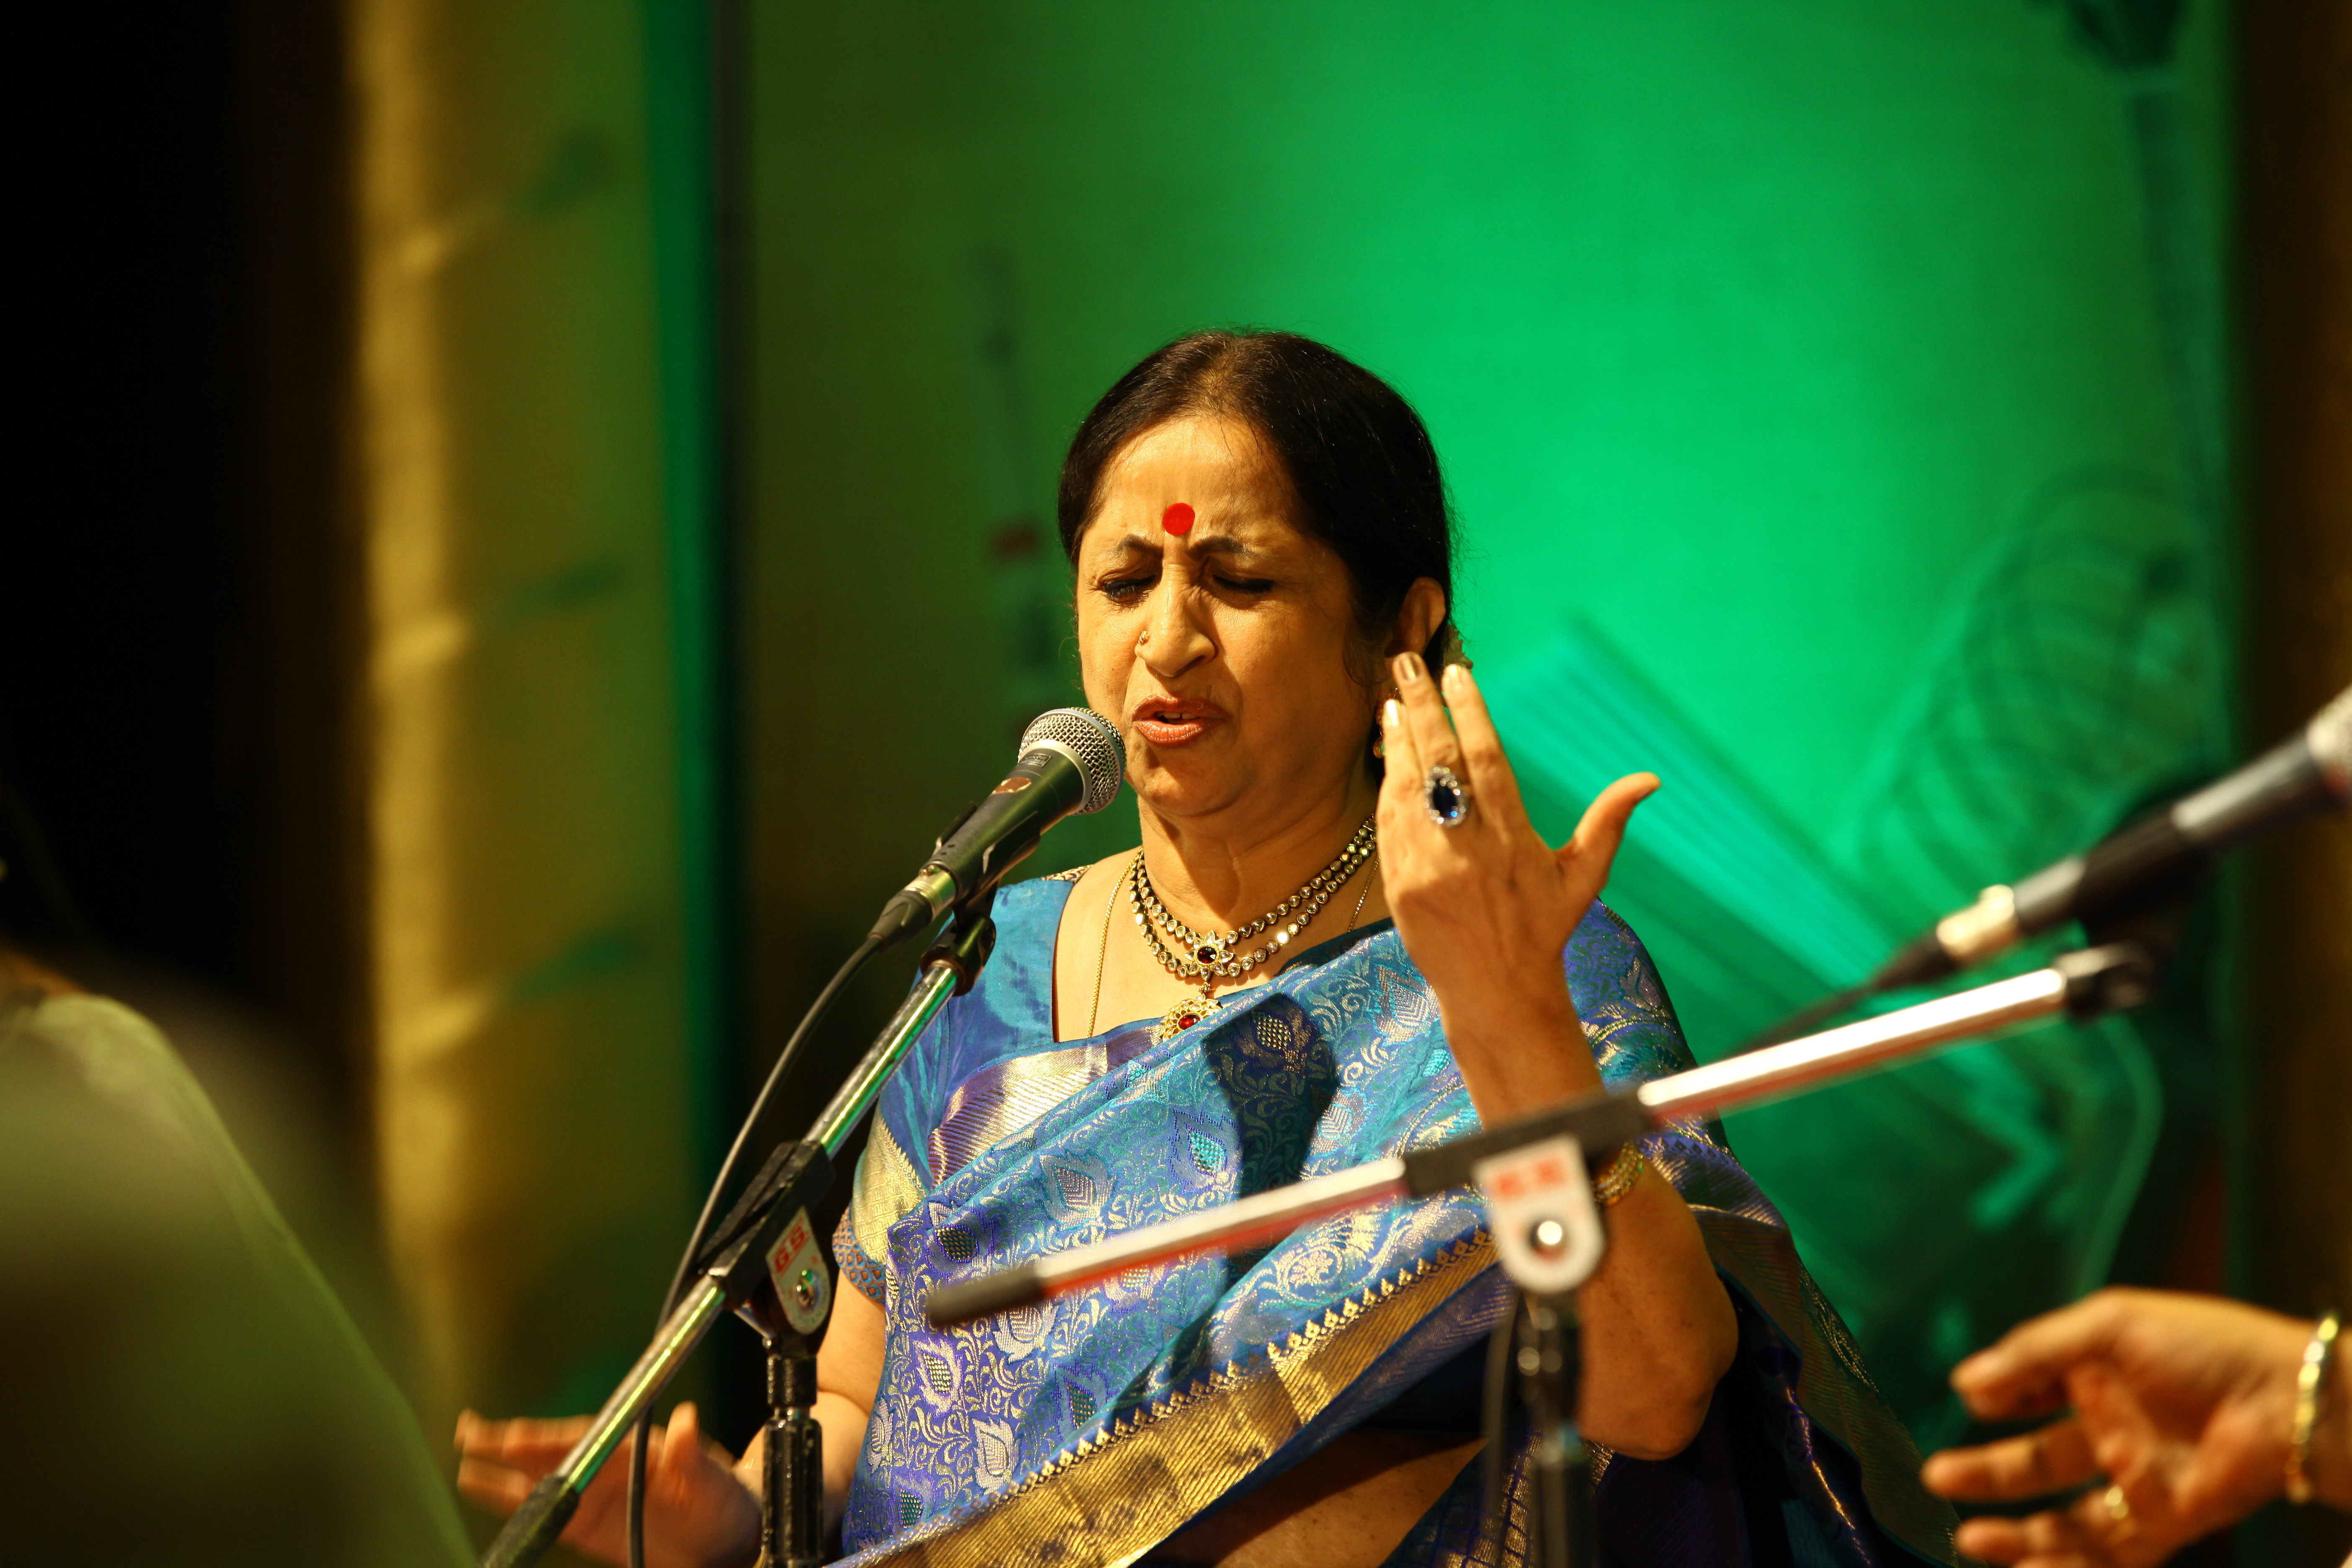 Concert of Aruna Sairam - Carnatic Classical Vocal